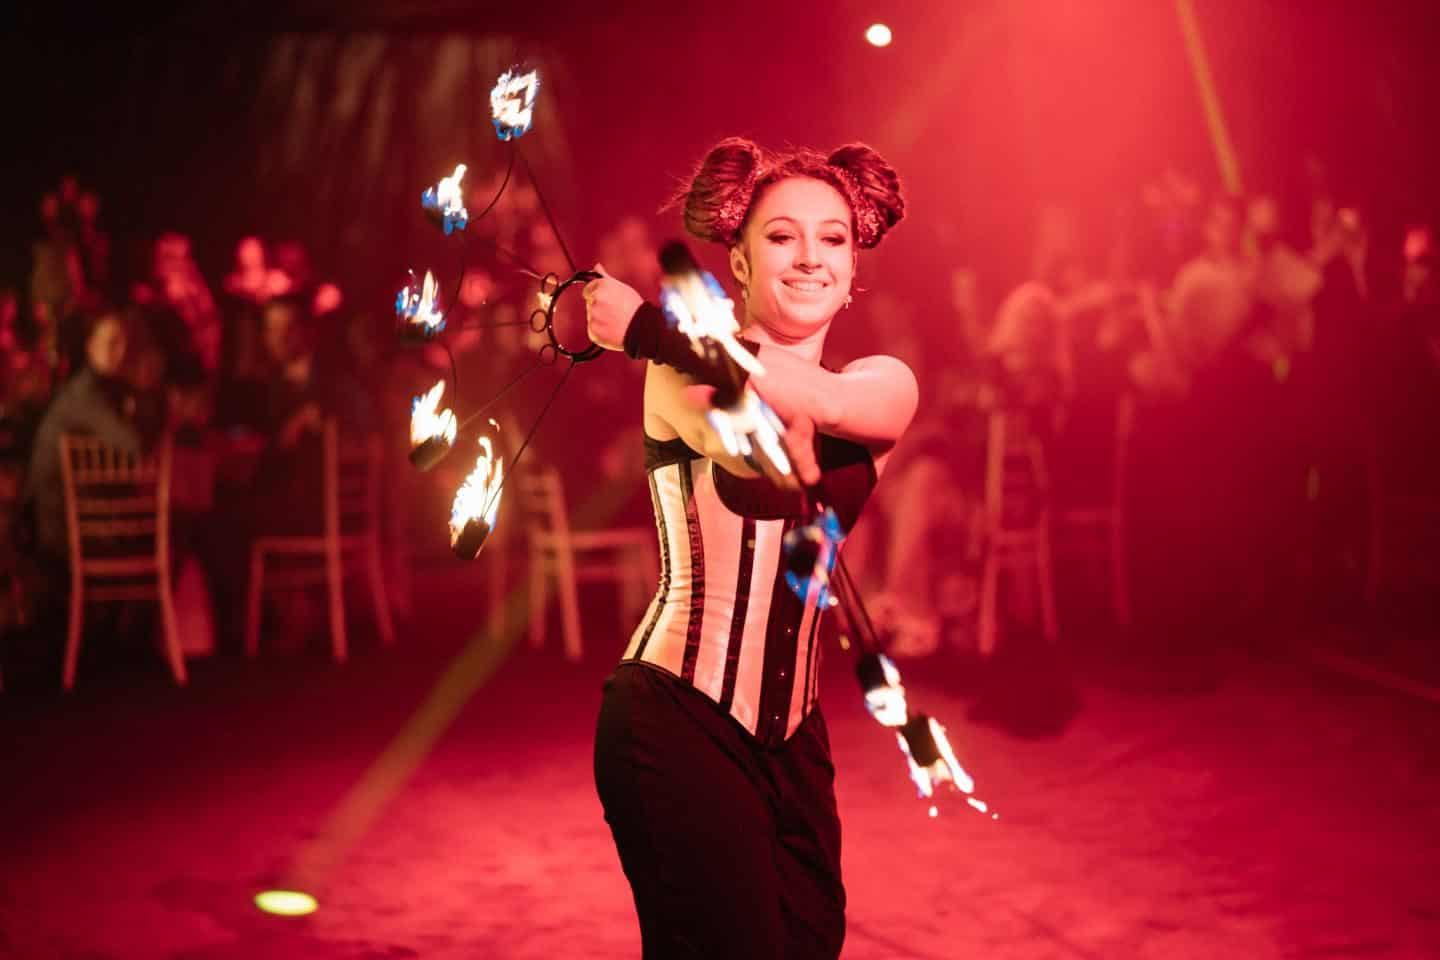 Vuelio Blog Awards 2018 at the Bloomsbury Big Top - fire juggling